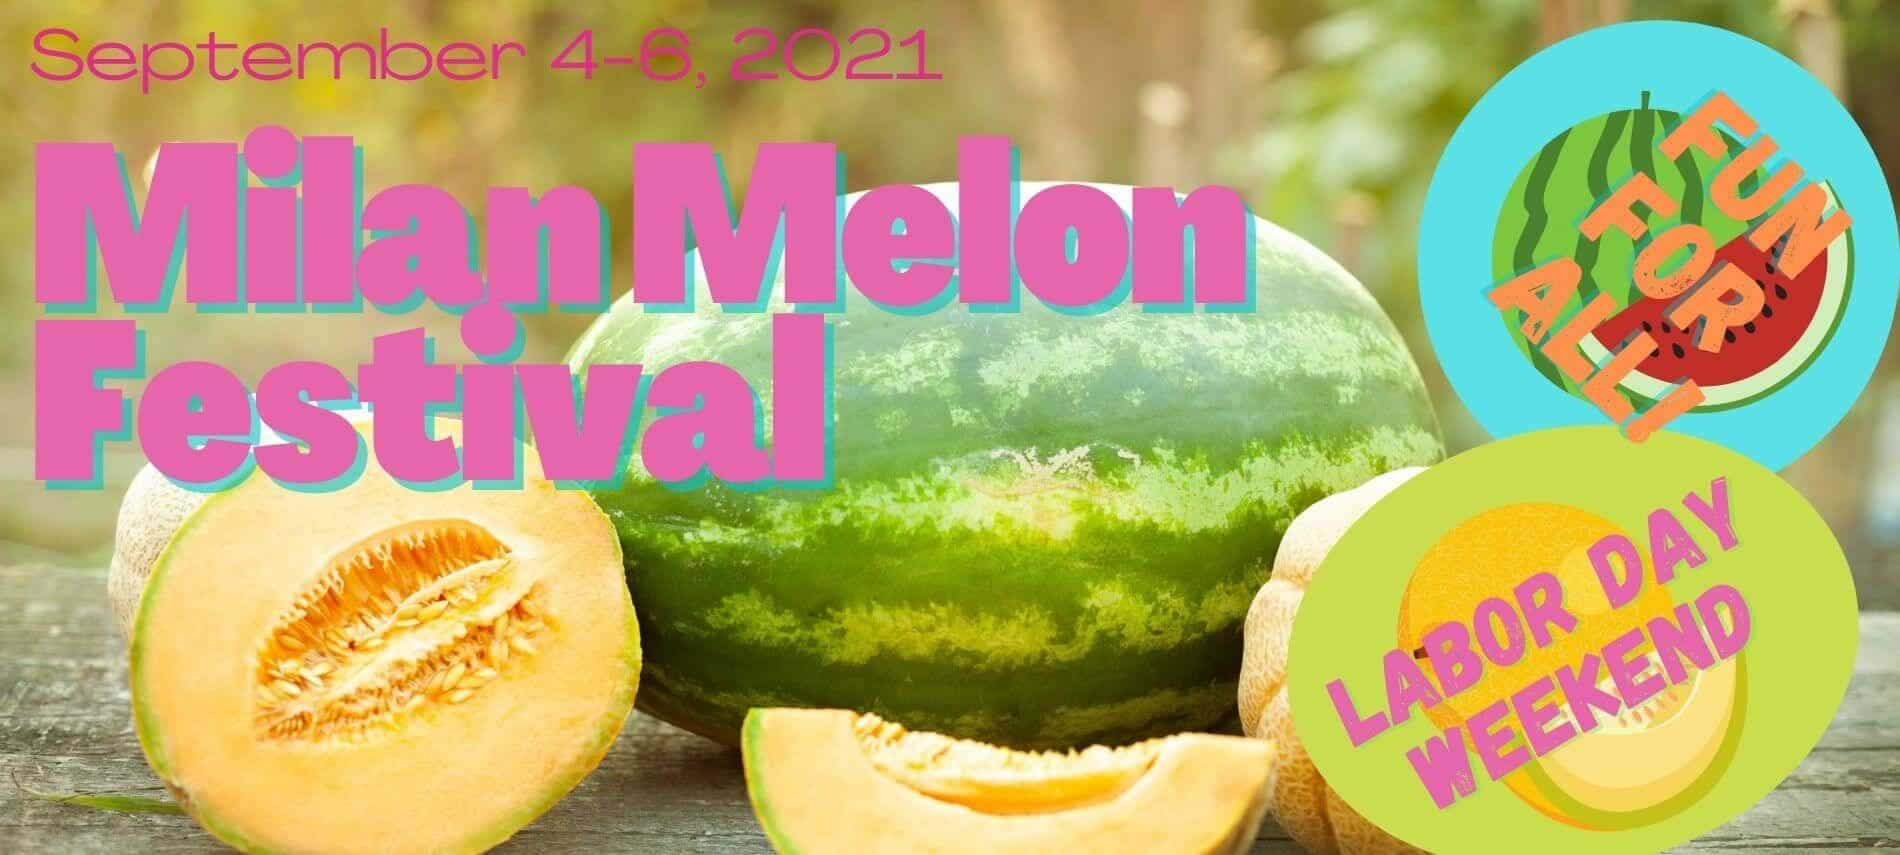 Watermelon and cantaloupes on table with text: MIlan Melon Festival, September 4-6, 2021